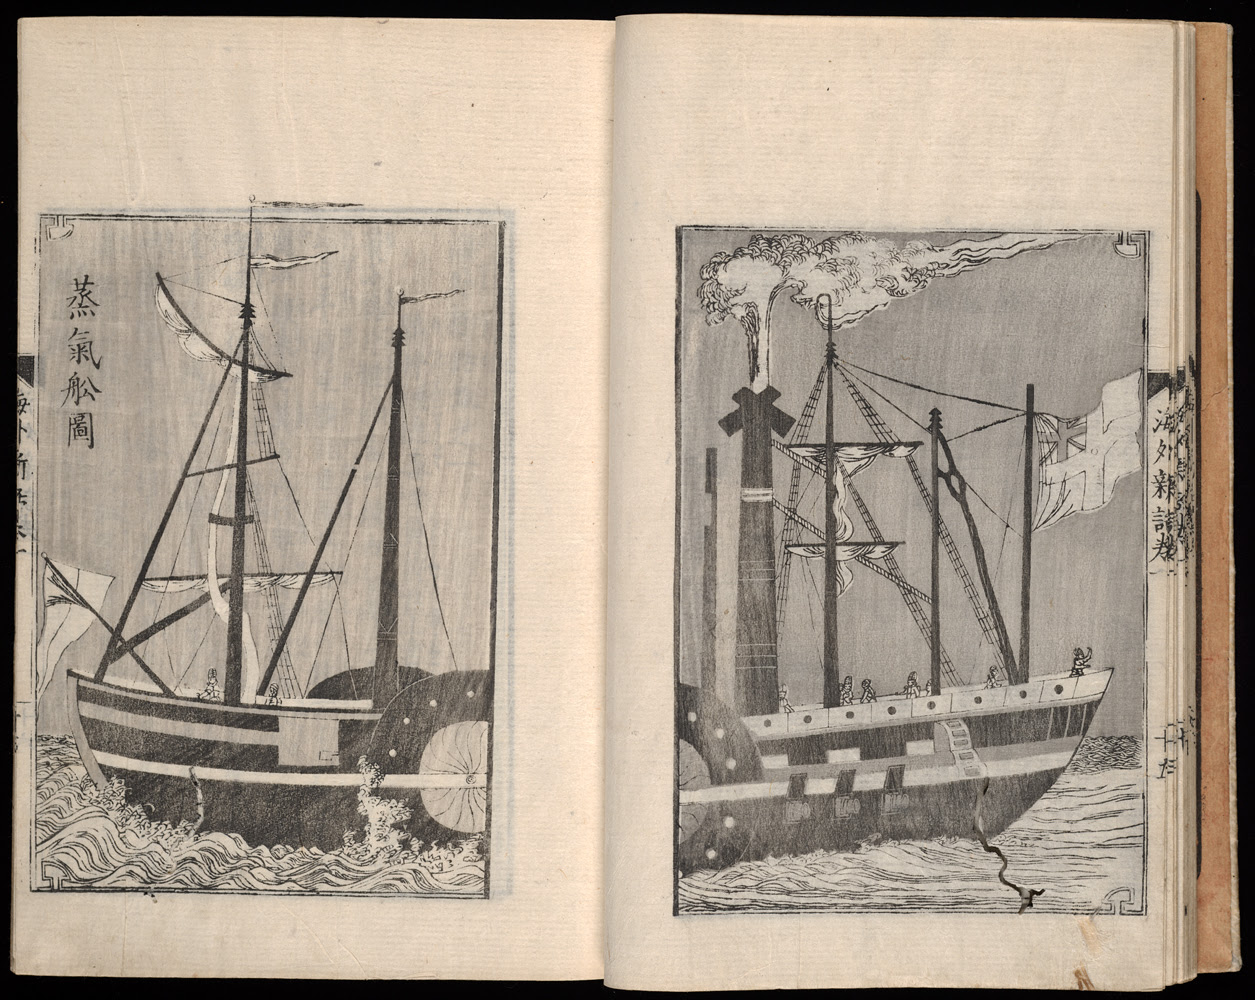 A British steam warship represented in Kaigai Shinwa, a Japanese book about the First Opium War.  Book published in 1849.